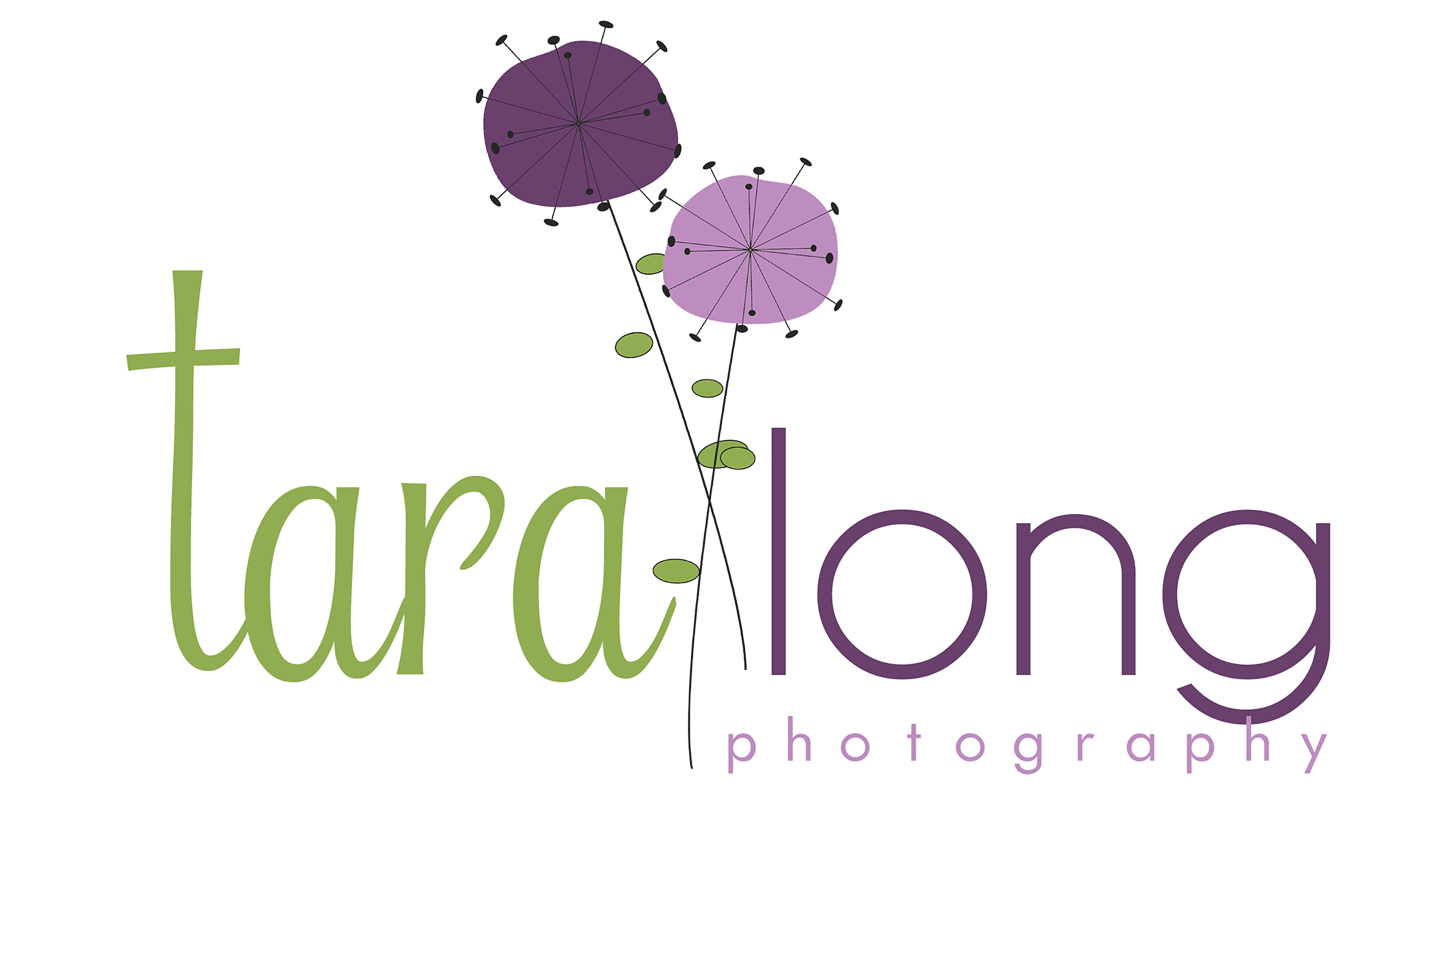 Tara Long Photography